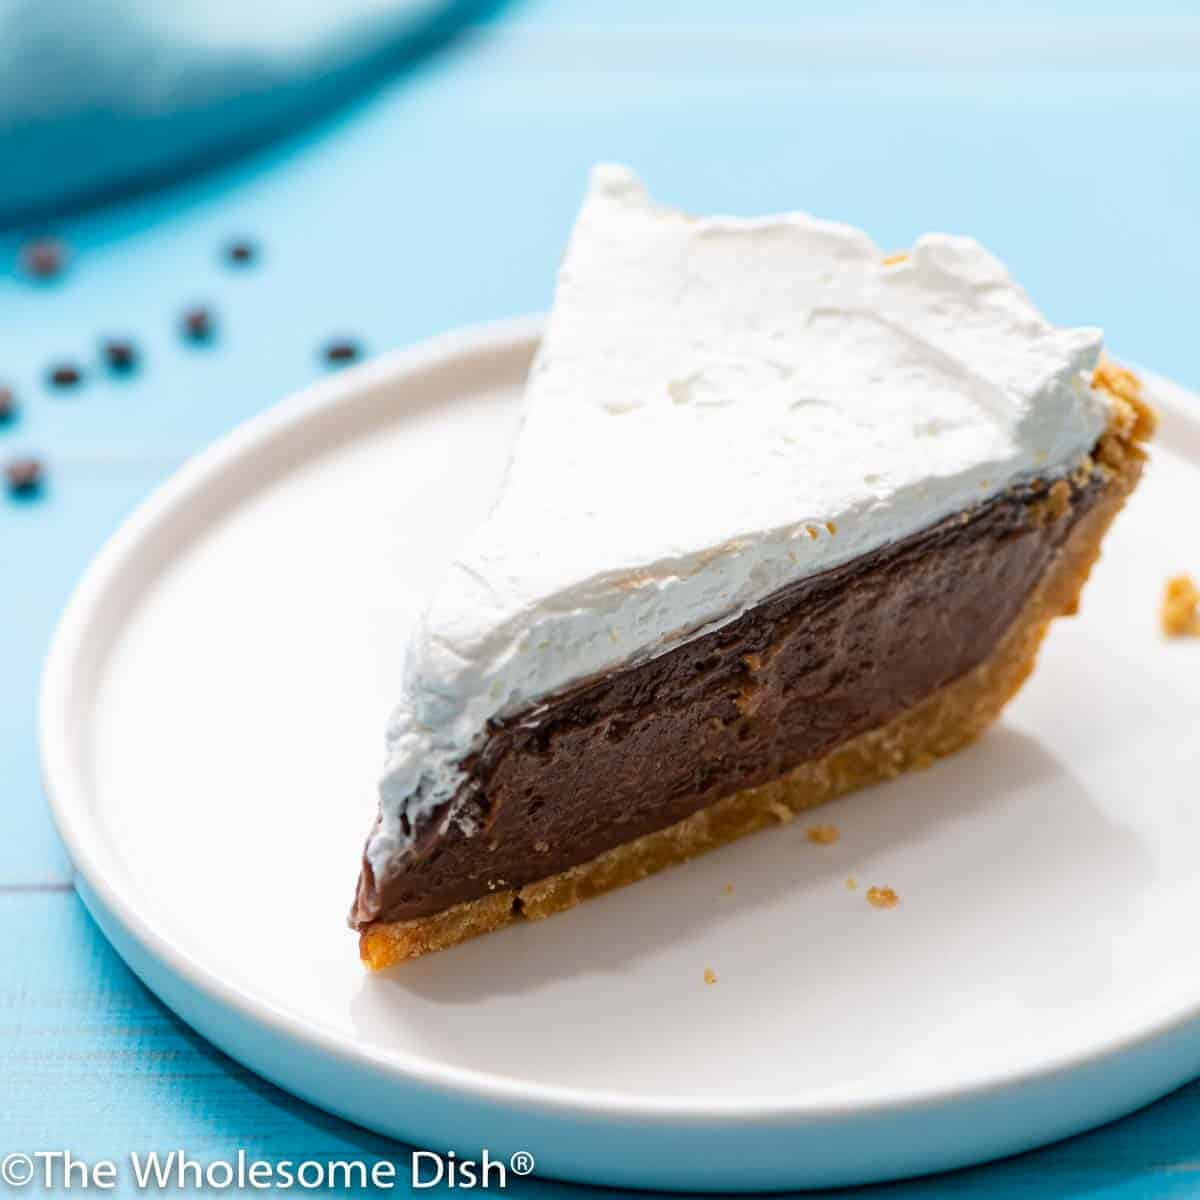 slice of chocolate cream pie with whipped cream on top on a white plate